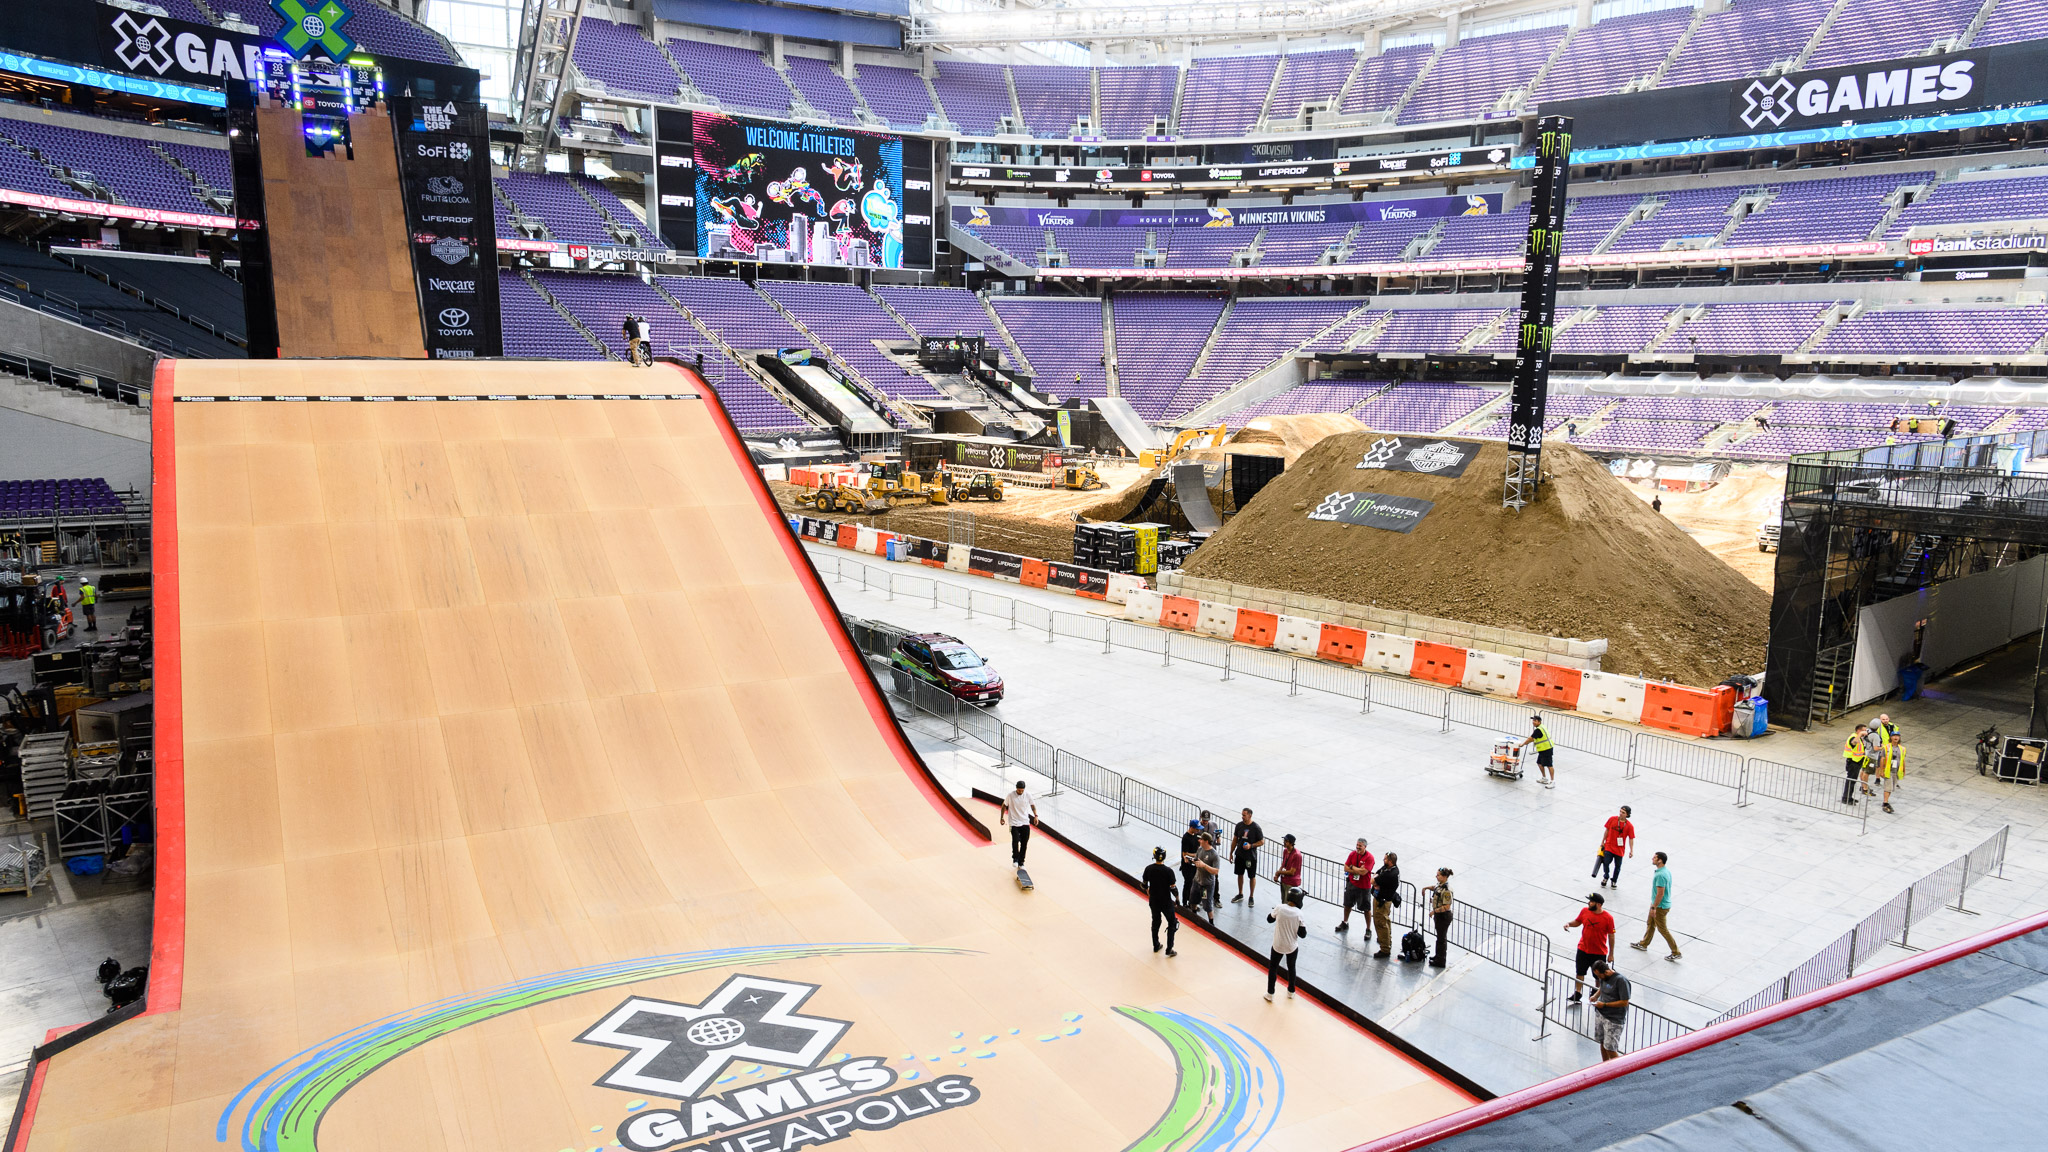 This is the view from the deck of the Big Air quarterpipe, showcasing the size of the Big Air ramp and U.S. Bank Stadium.